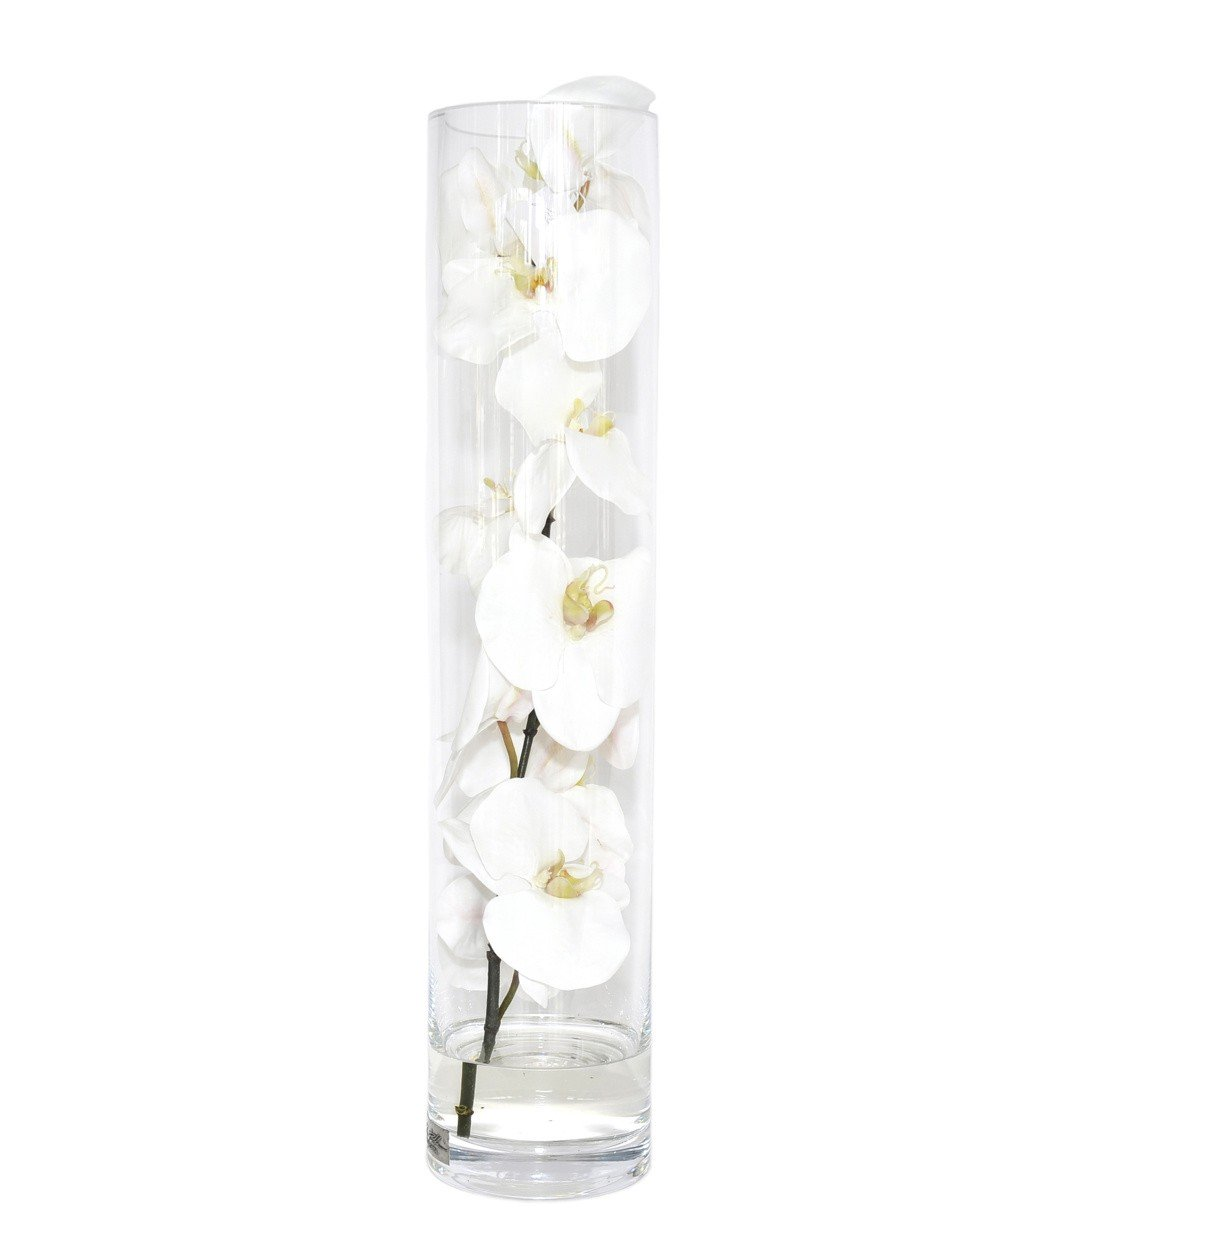 Phalaenopsis orchids in a cylinder